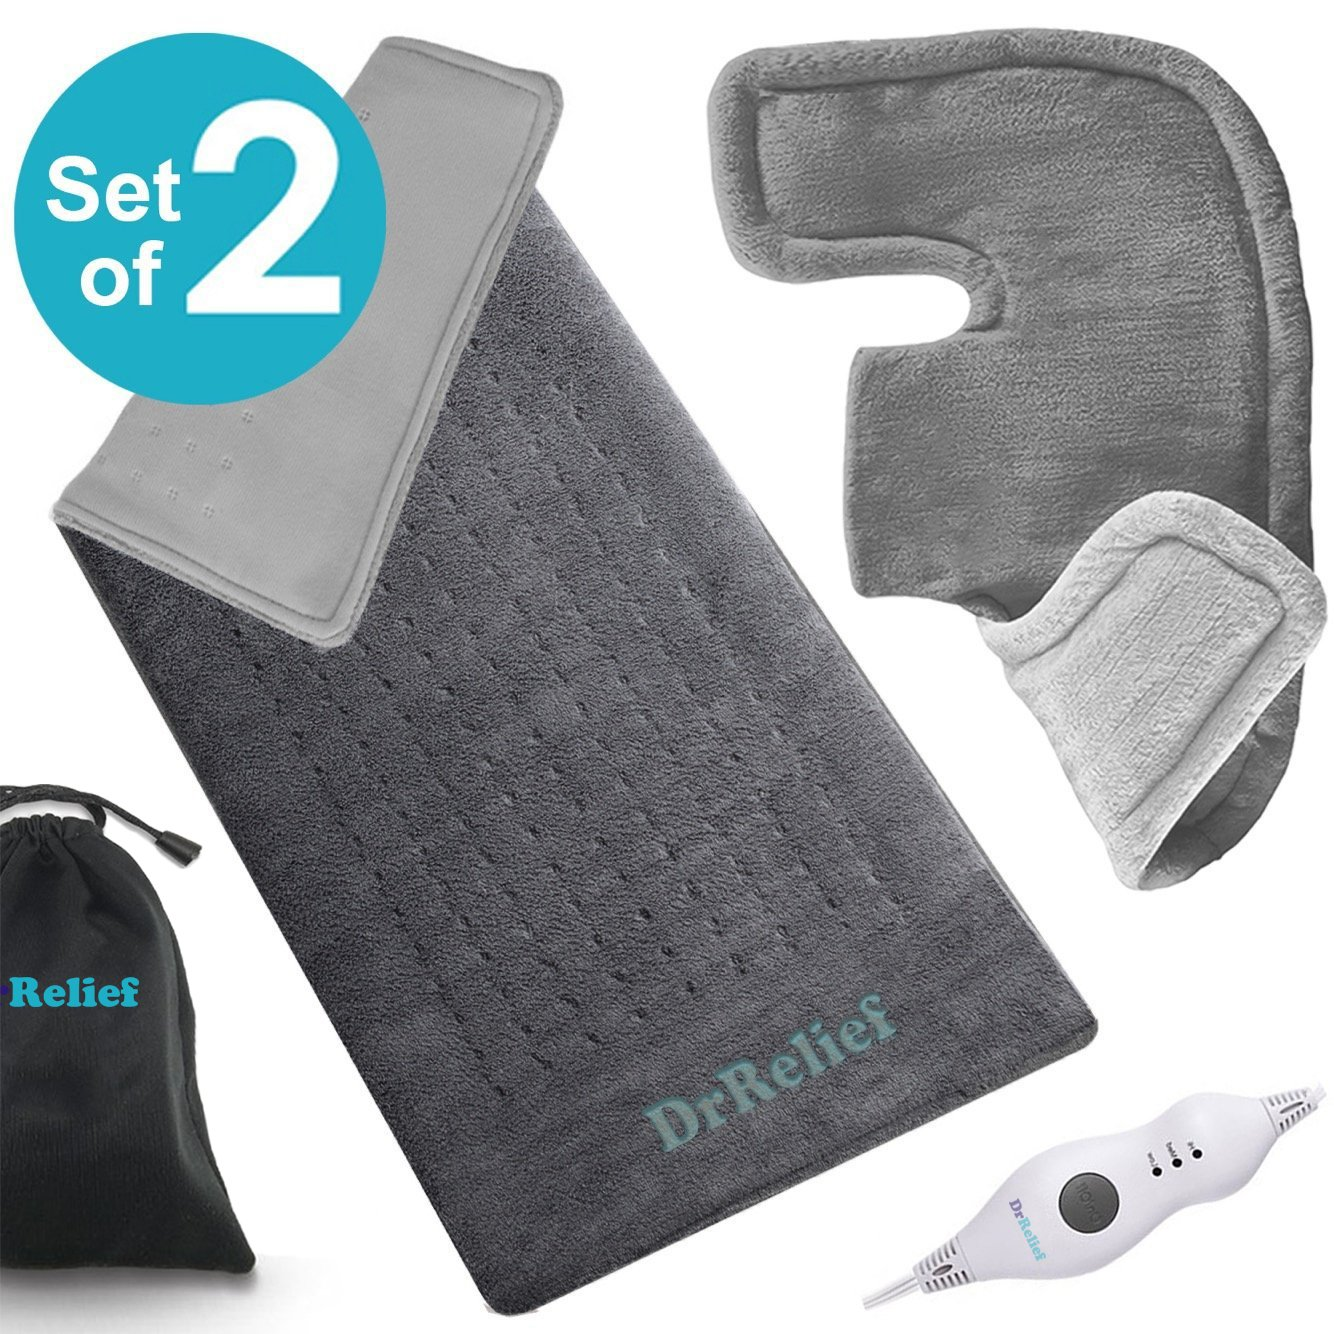 Heating Pad Gift Set of 2 – Shoulder & Neck Heating Pad and Extra-Large 12 x 24 Inch Heating Wrap for Back or Abdominal Pain Relief – Moist Heating Option with Auto Shut Off